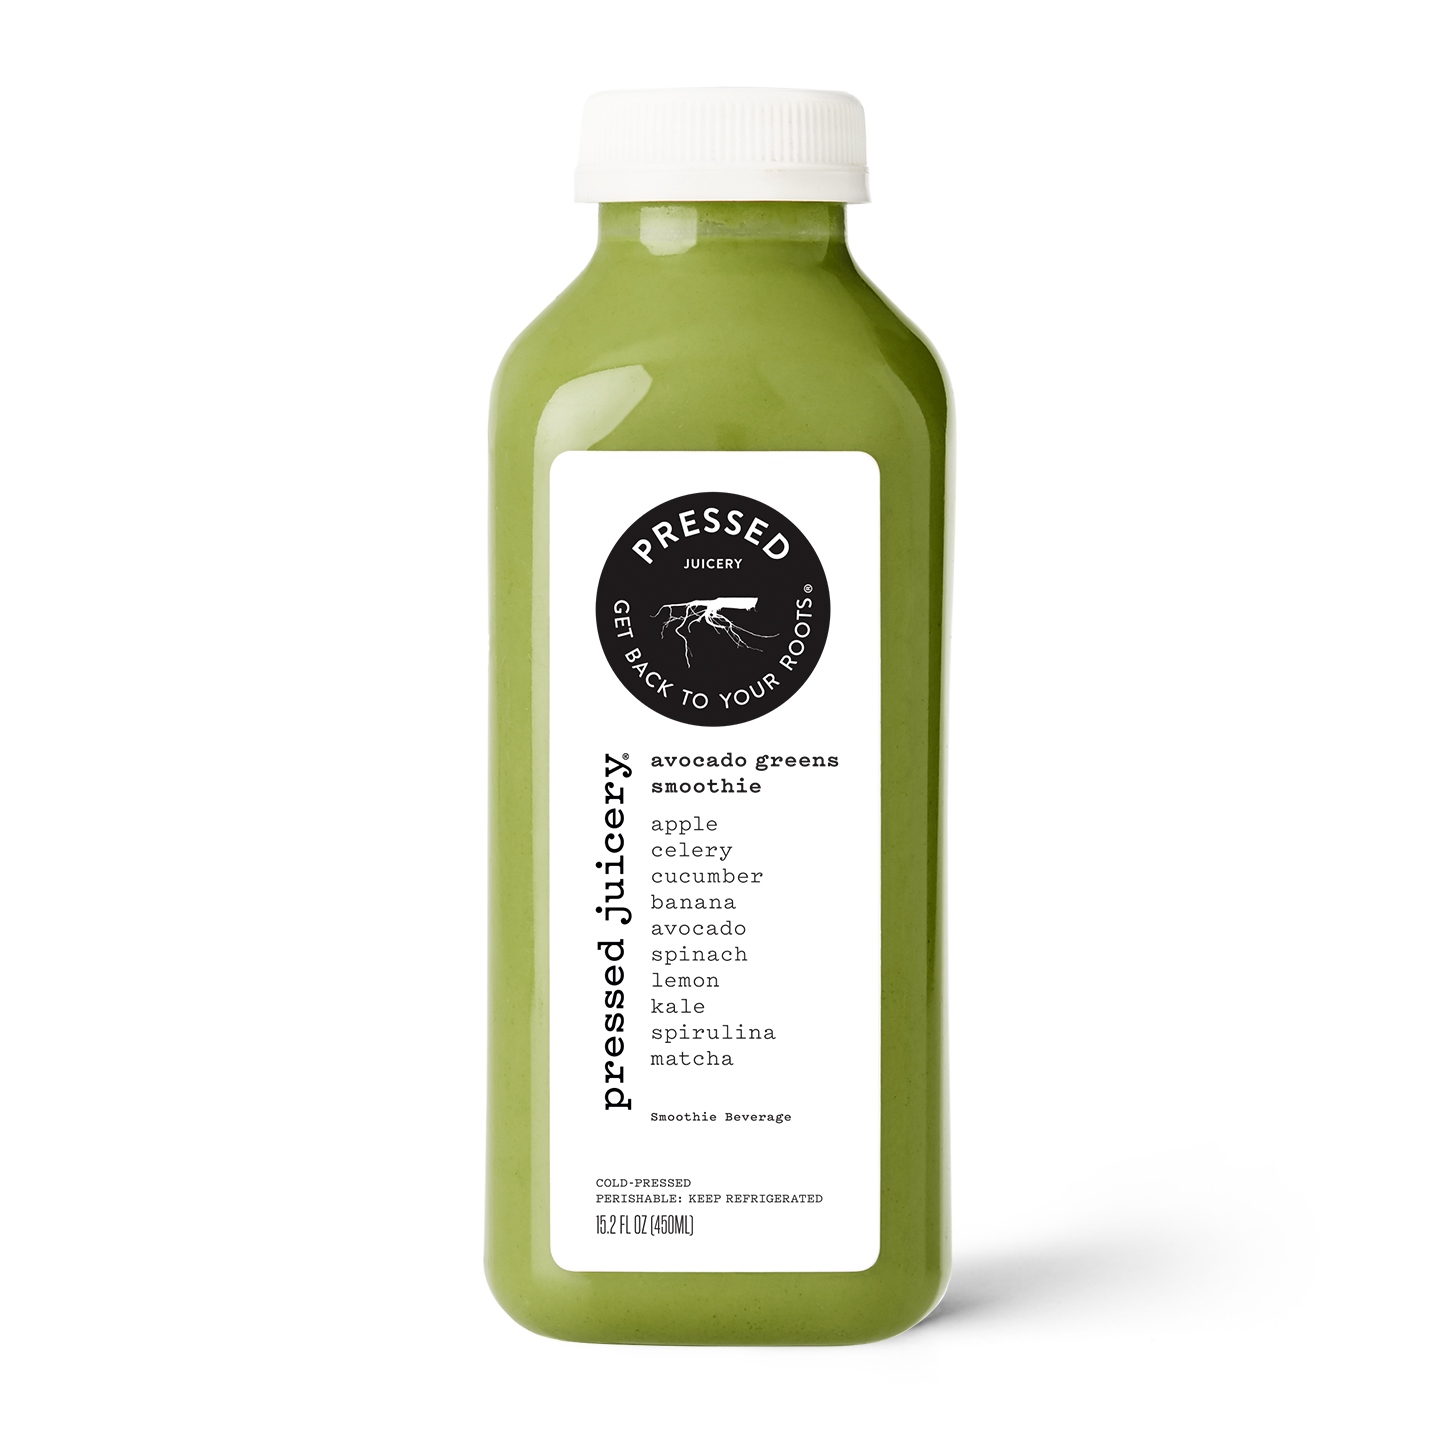 Avocado Greens Smoothie product image